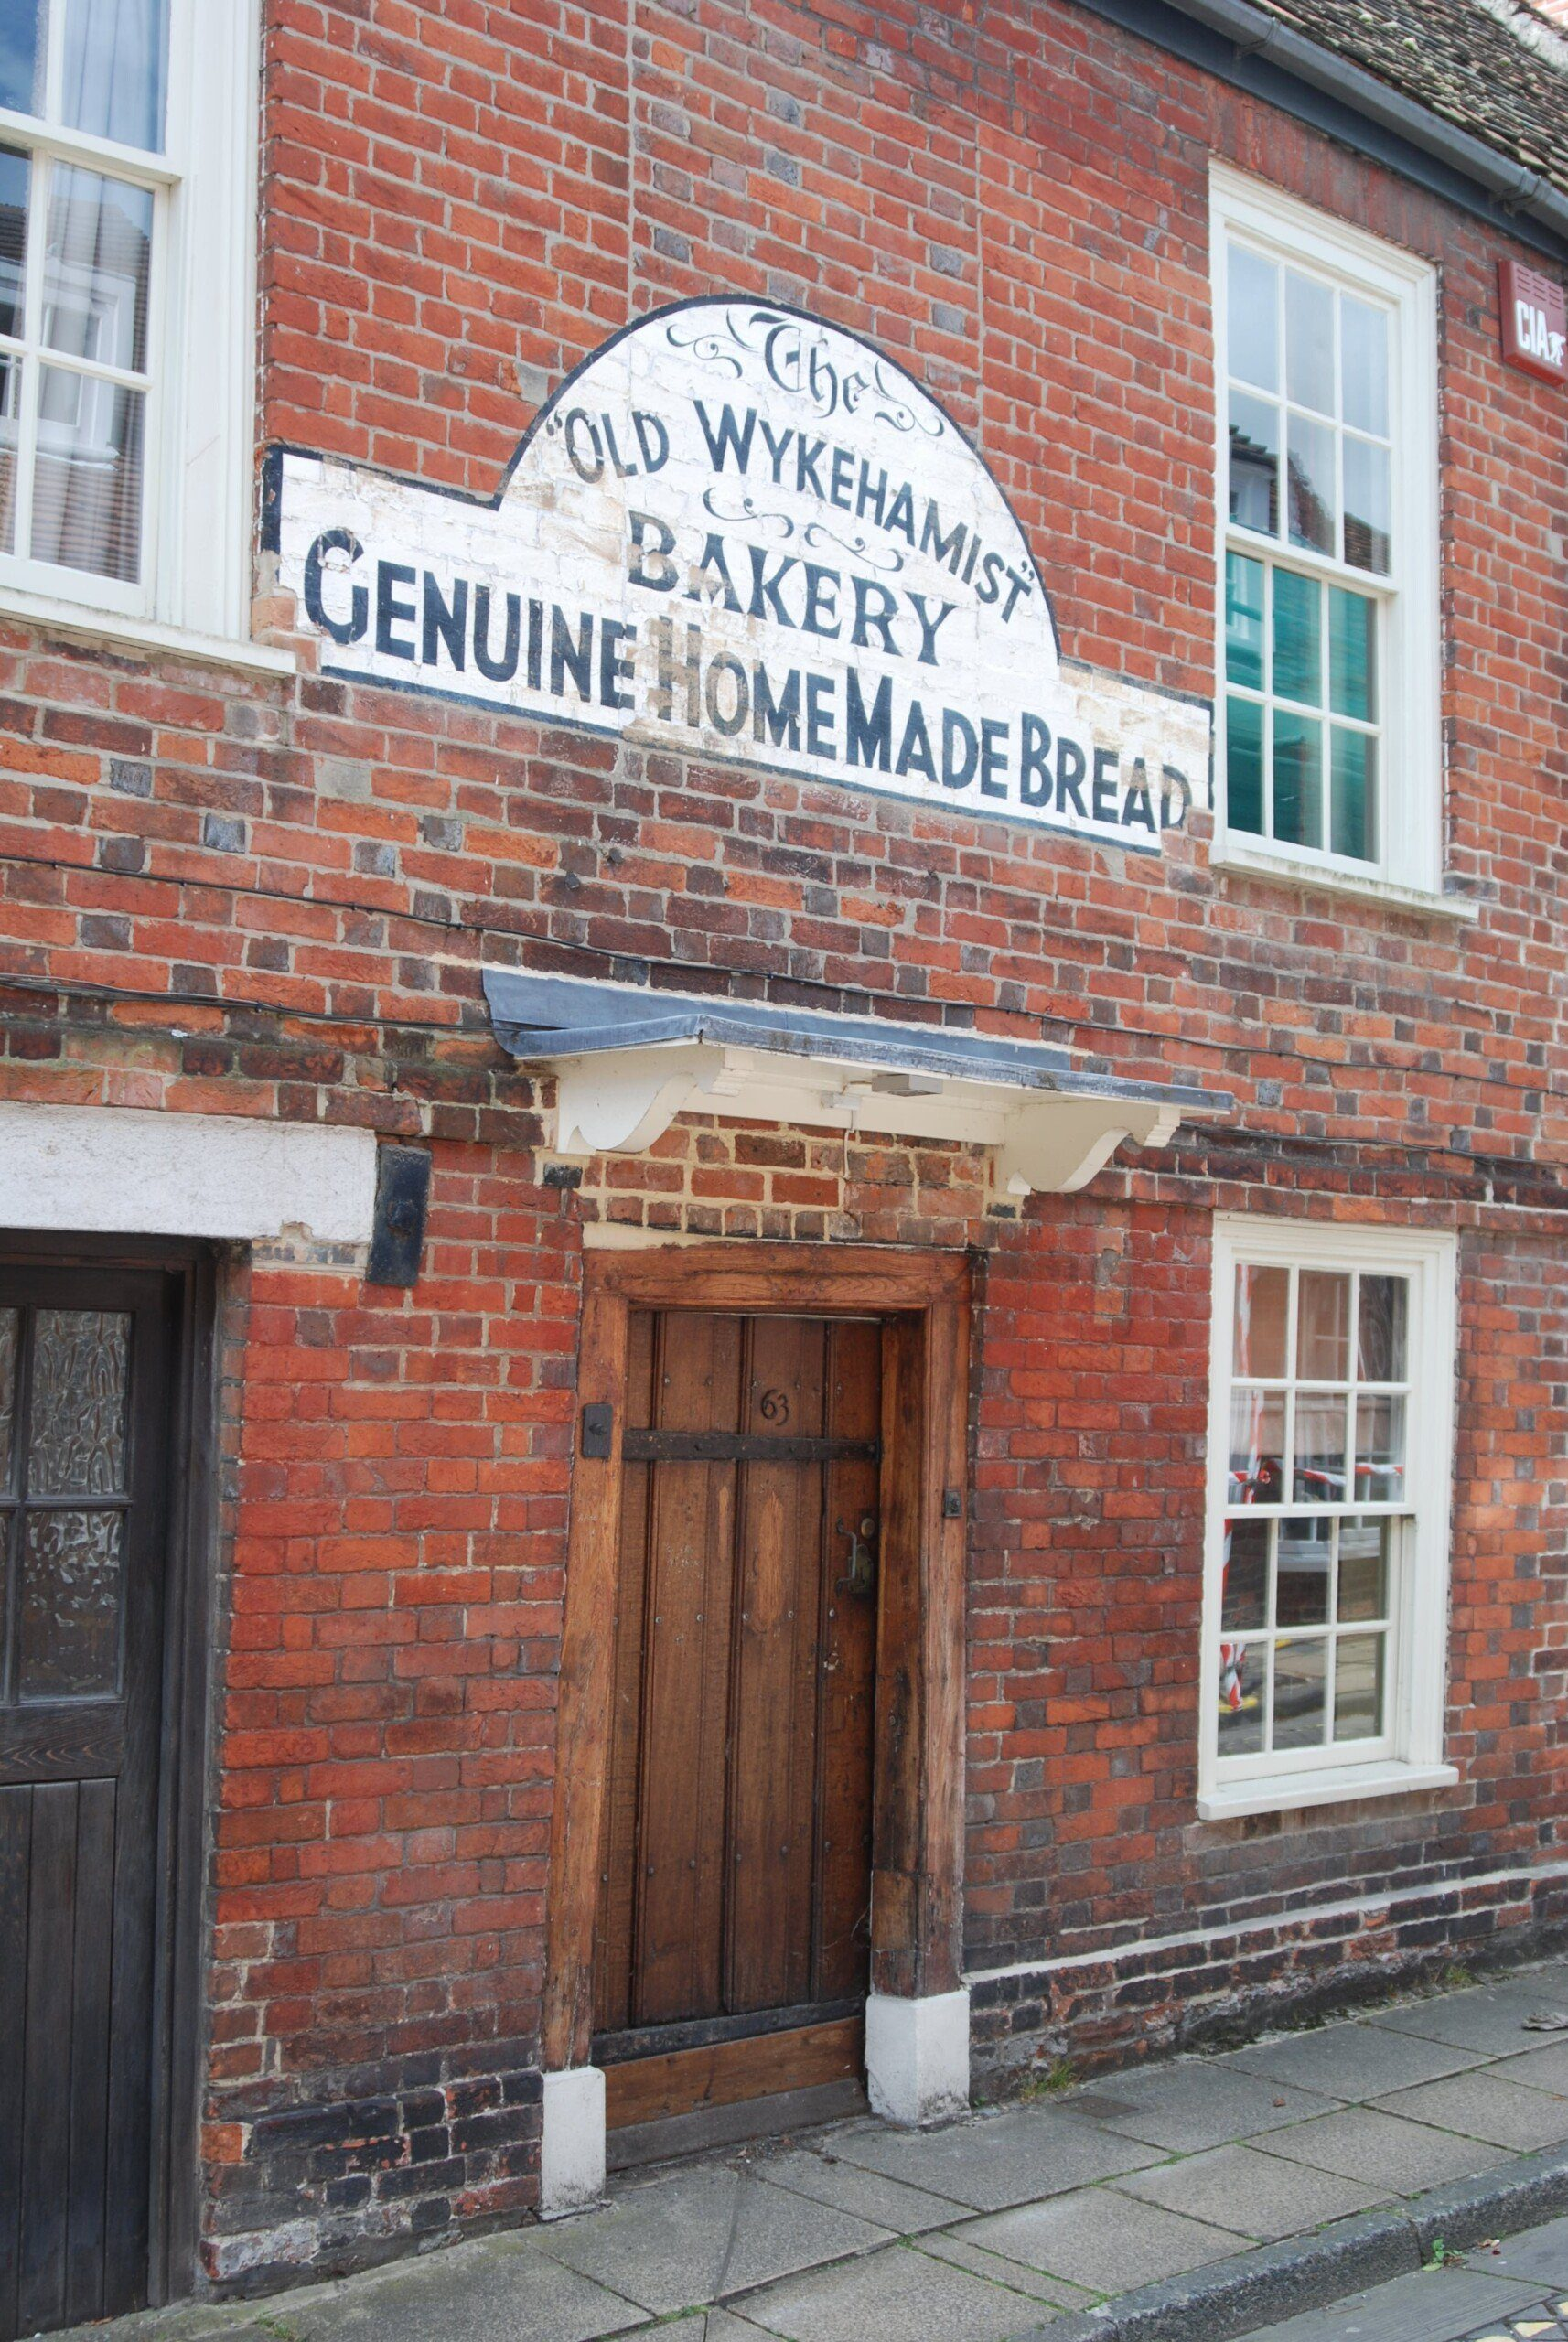 Brick terraced building with sign painted on it 'The Old Wykehamist Bakery Genuine Home Made Bread'